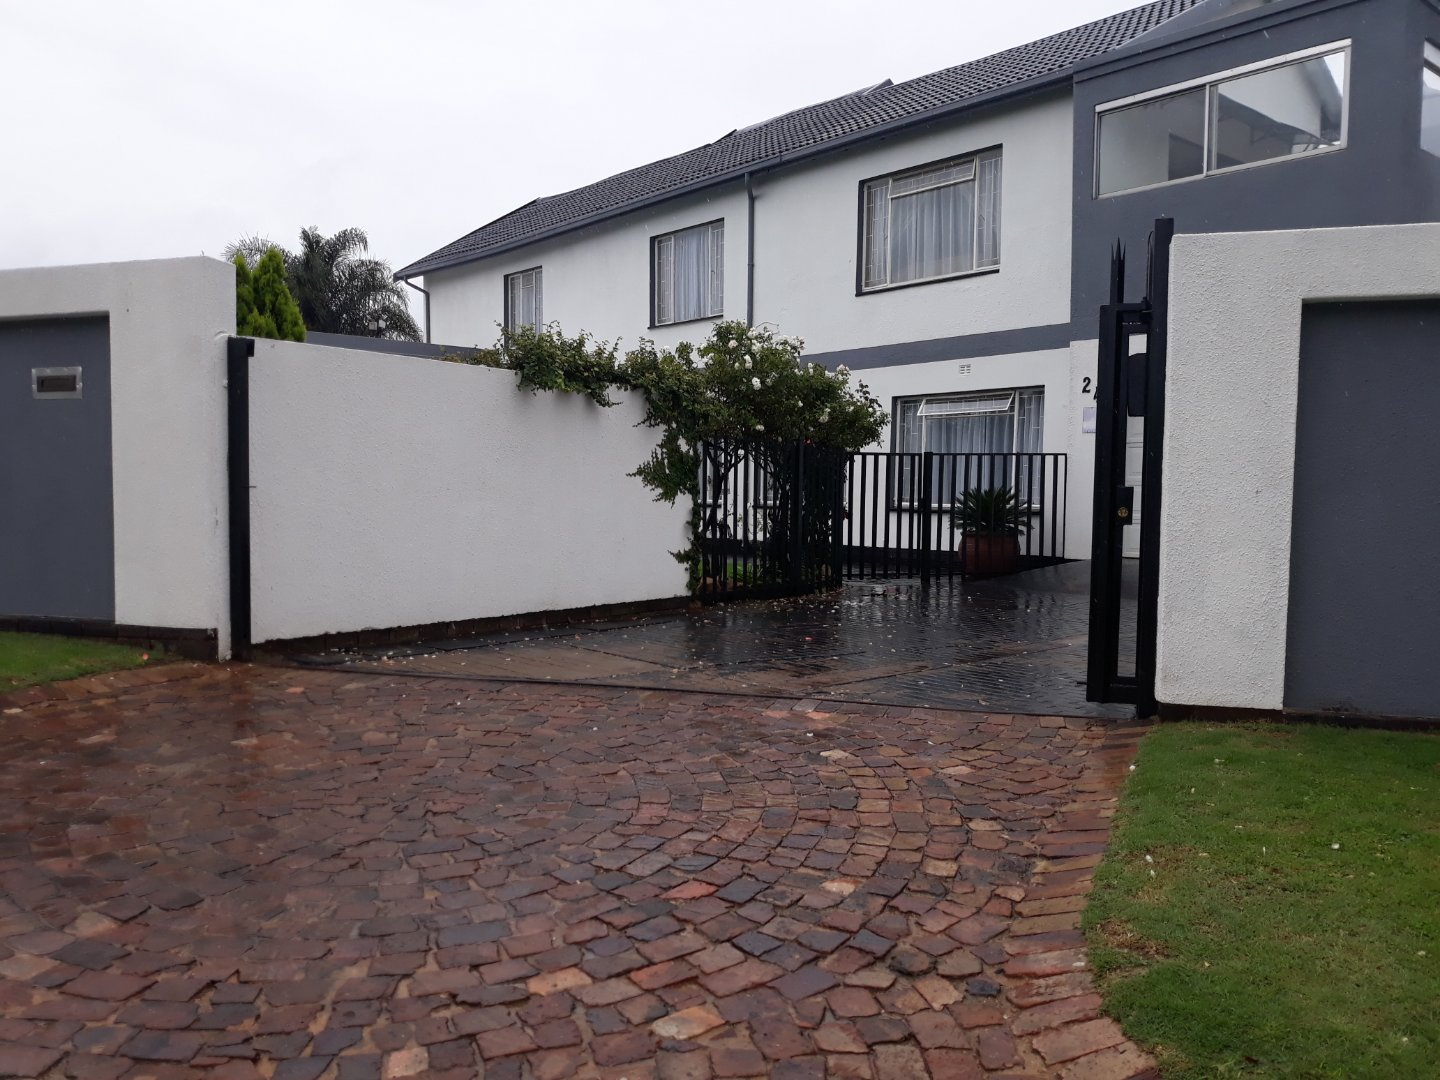 Property and Houses for sale in Verwoerdpark, House, 3 Bedrooms - ZAR 2,200,000